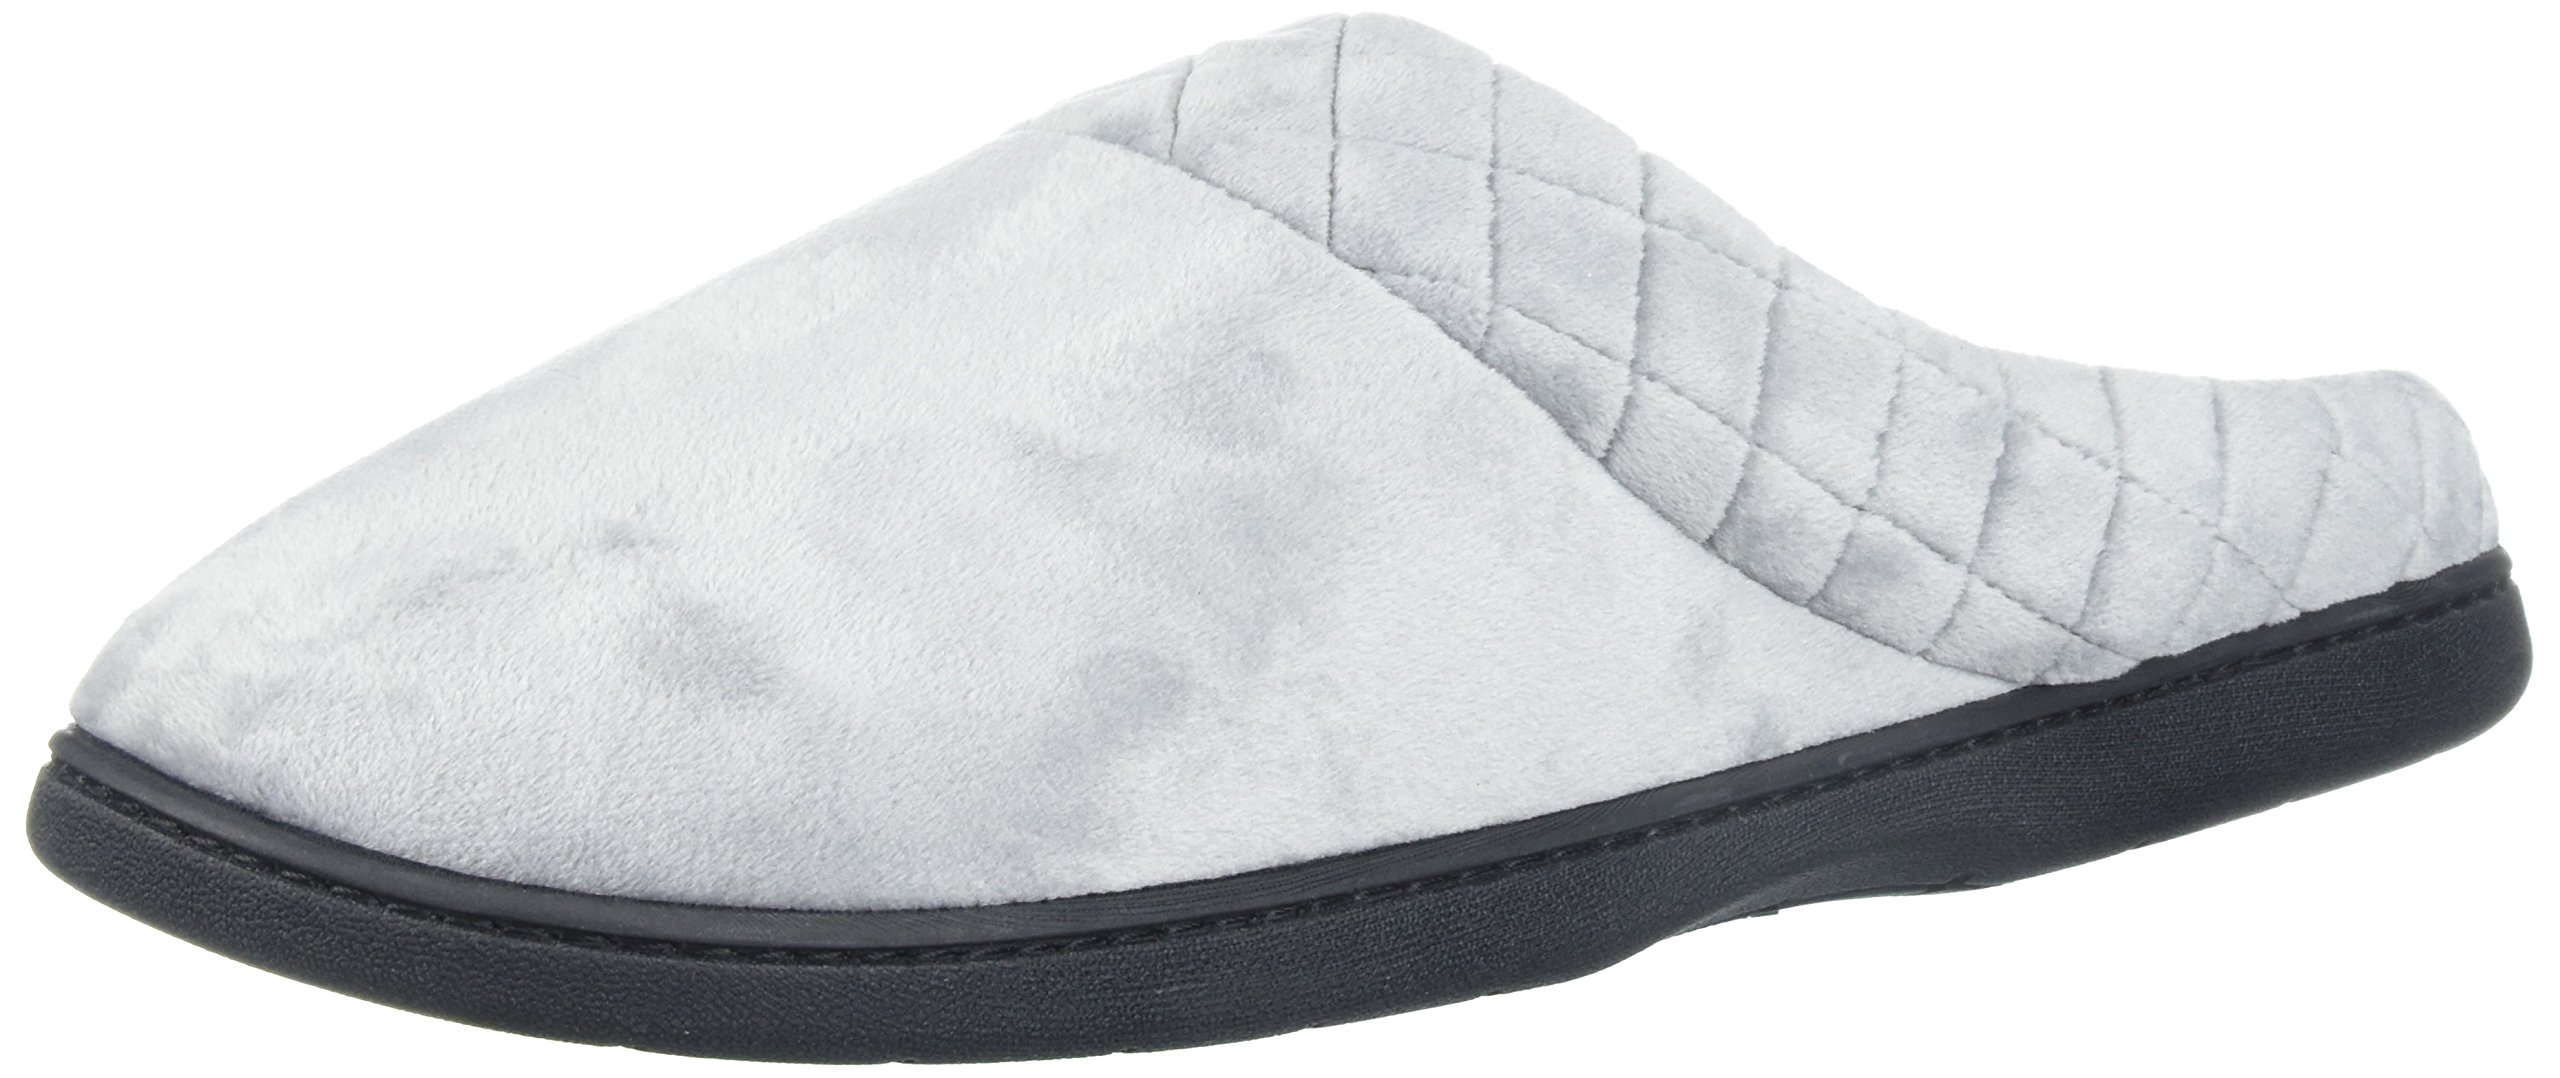 Dearfoams Women's Microfiber Velour Clog w/Quilt, Medium Grey, XXL Medium US